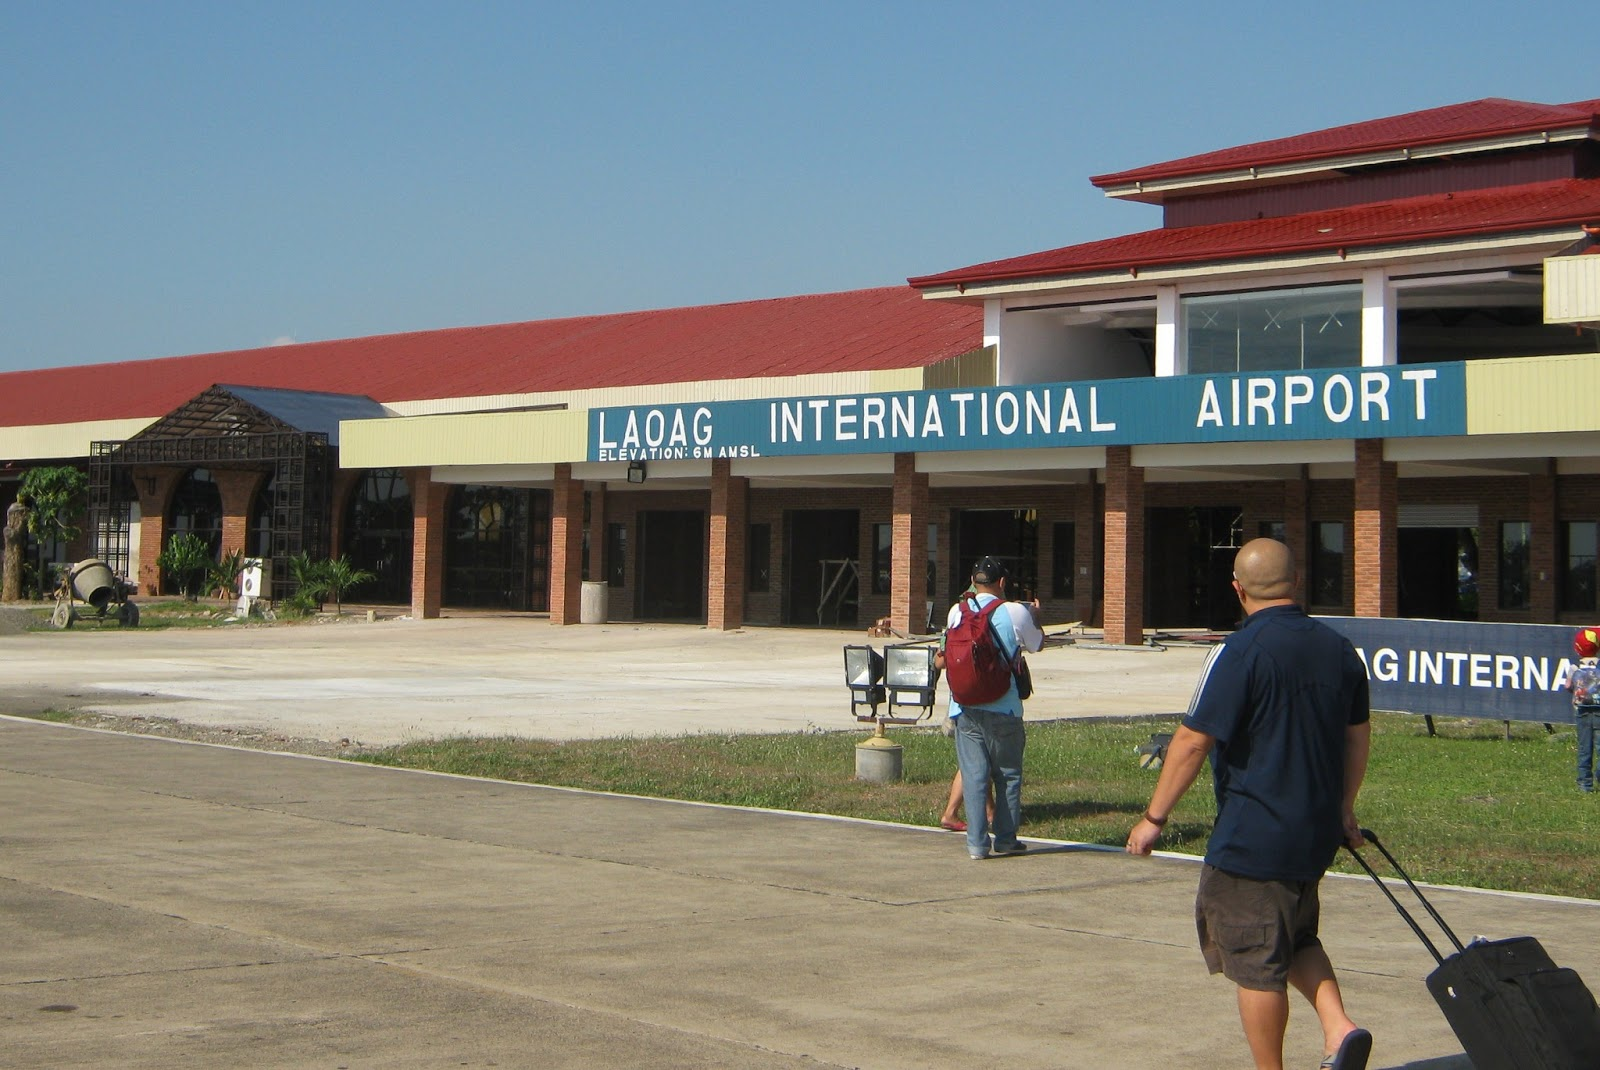 laoag international airport